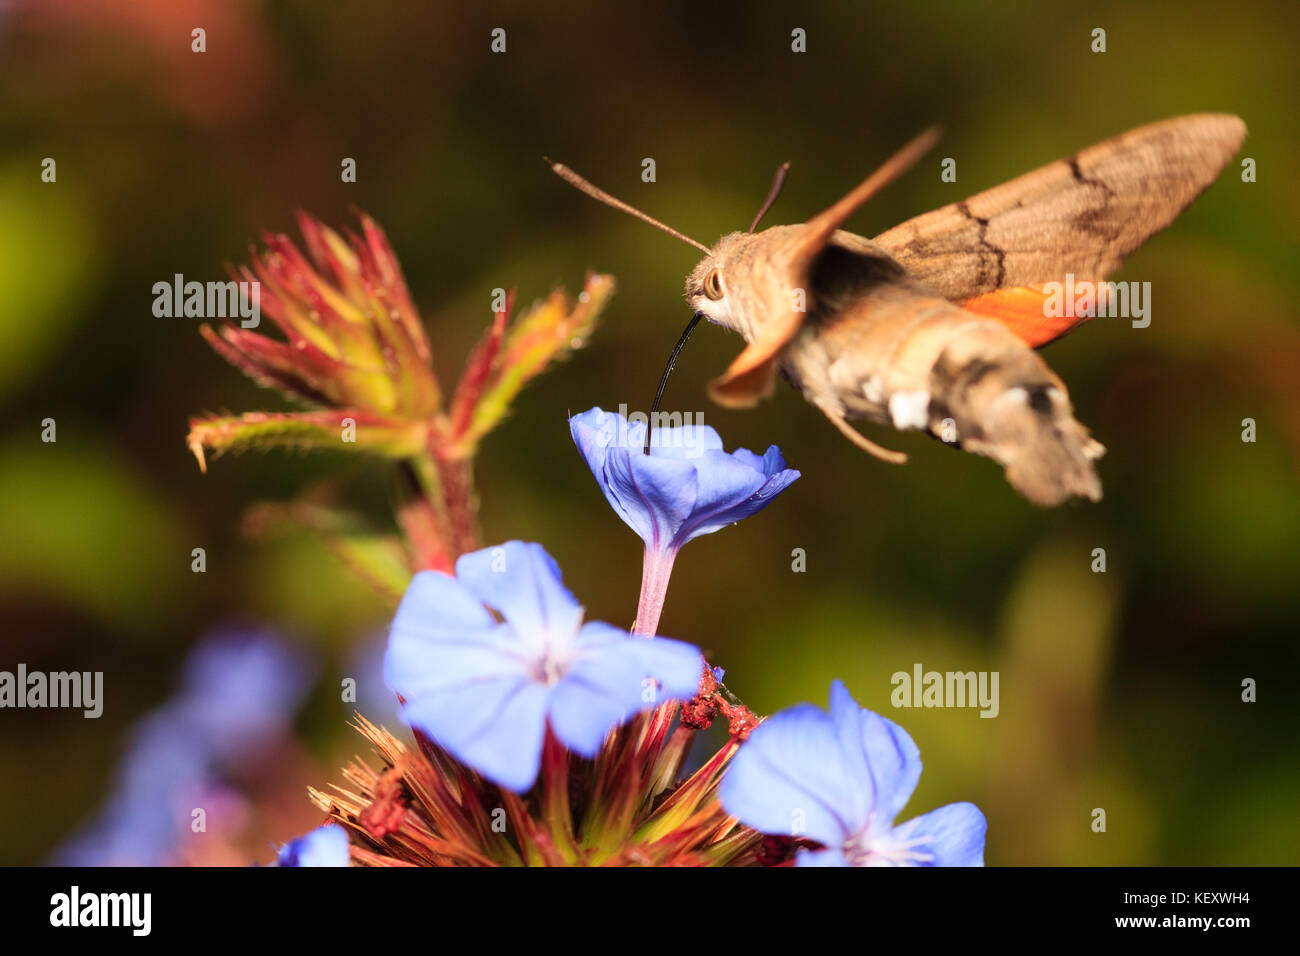 humming-bird-hawk-moth-macroglossum-stellatarum-in-flight-feeding-KEXWH4.jpg